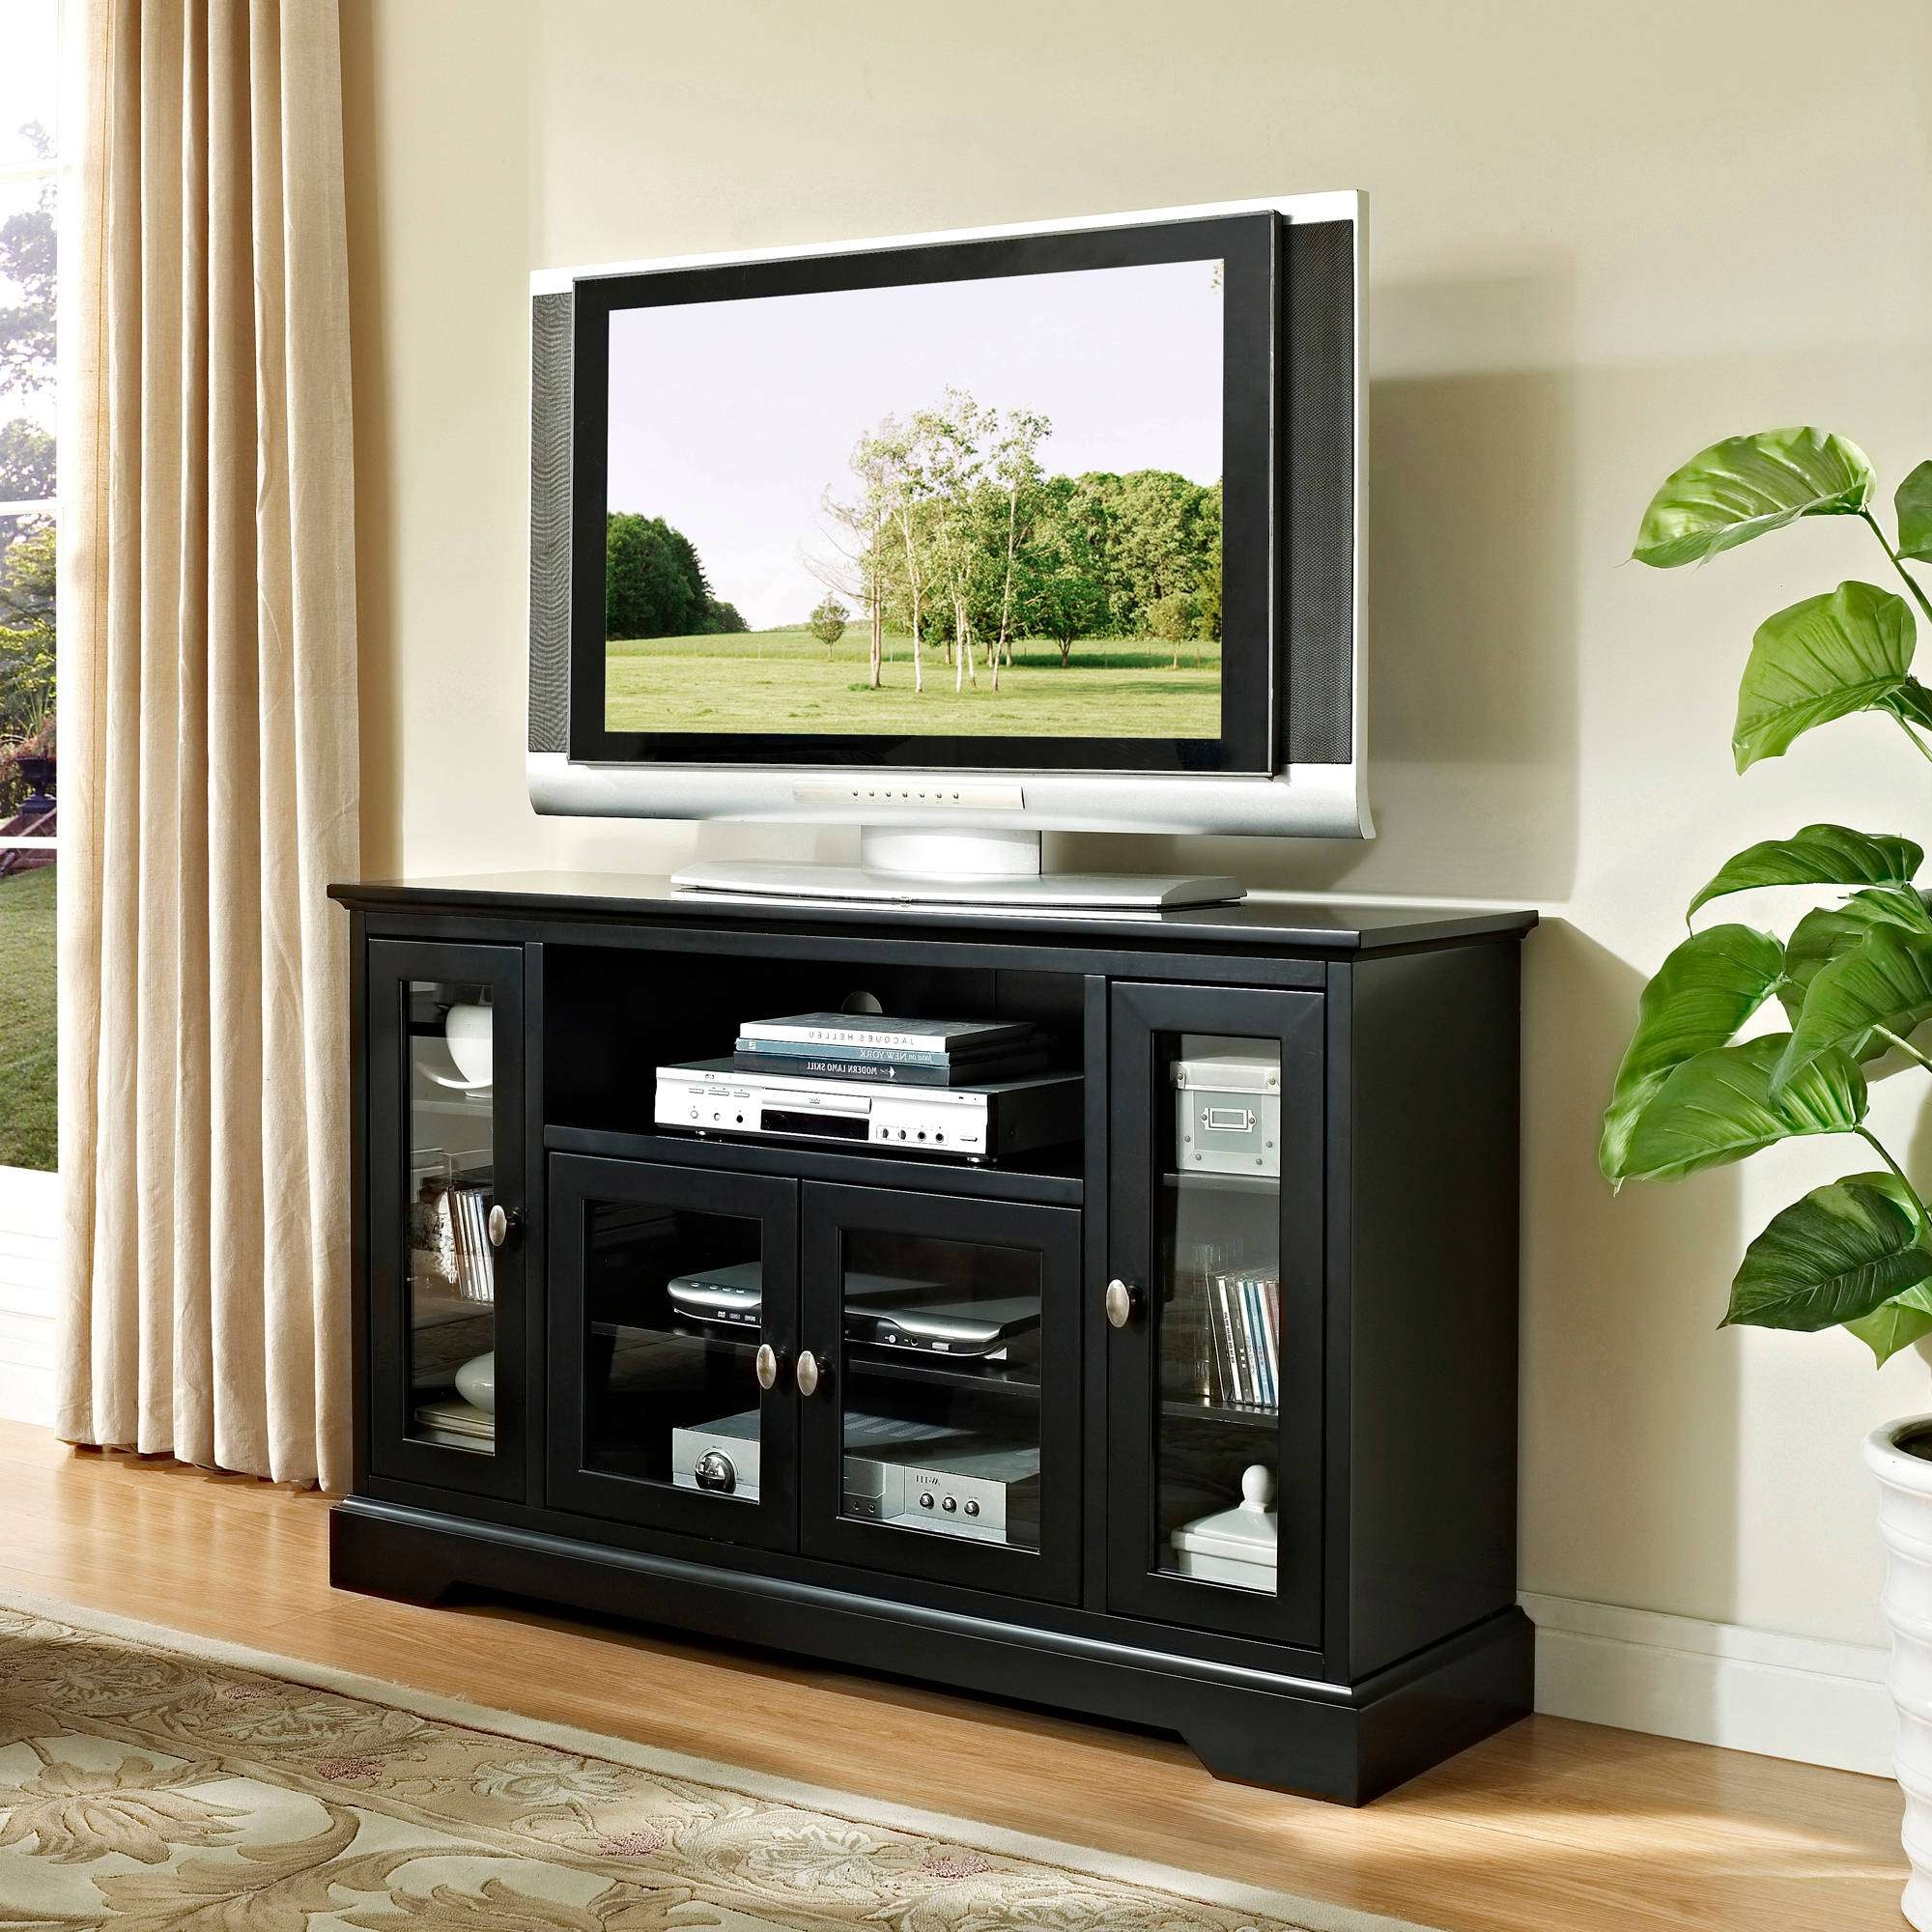 Tv Stand : 32 Unusual 55 Inch Corner Tv Stand With Mount Images With Corner 55 Inch Tv Stands (View 10 of 15)